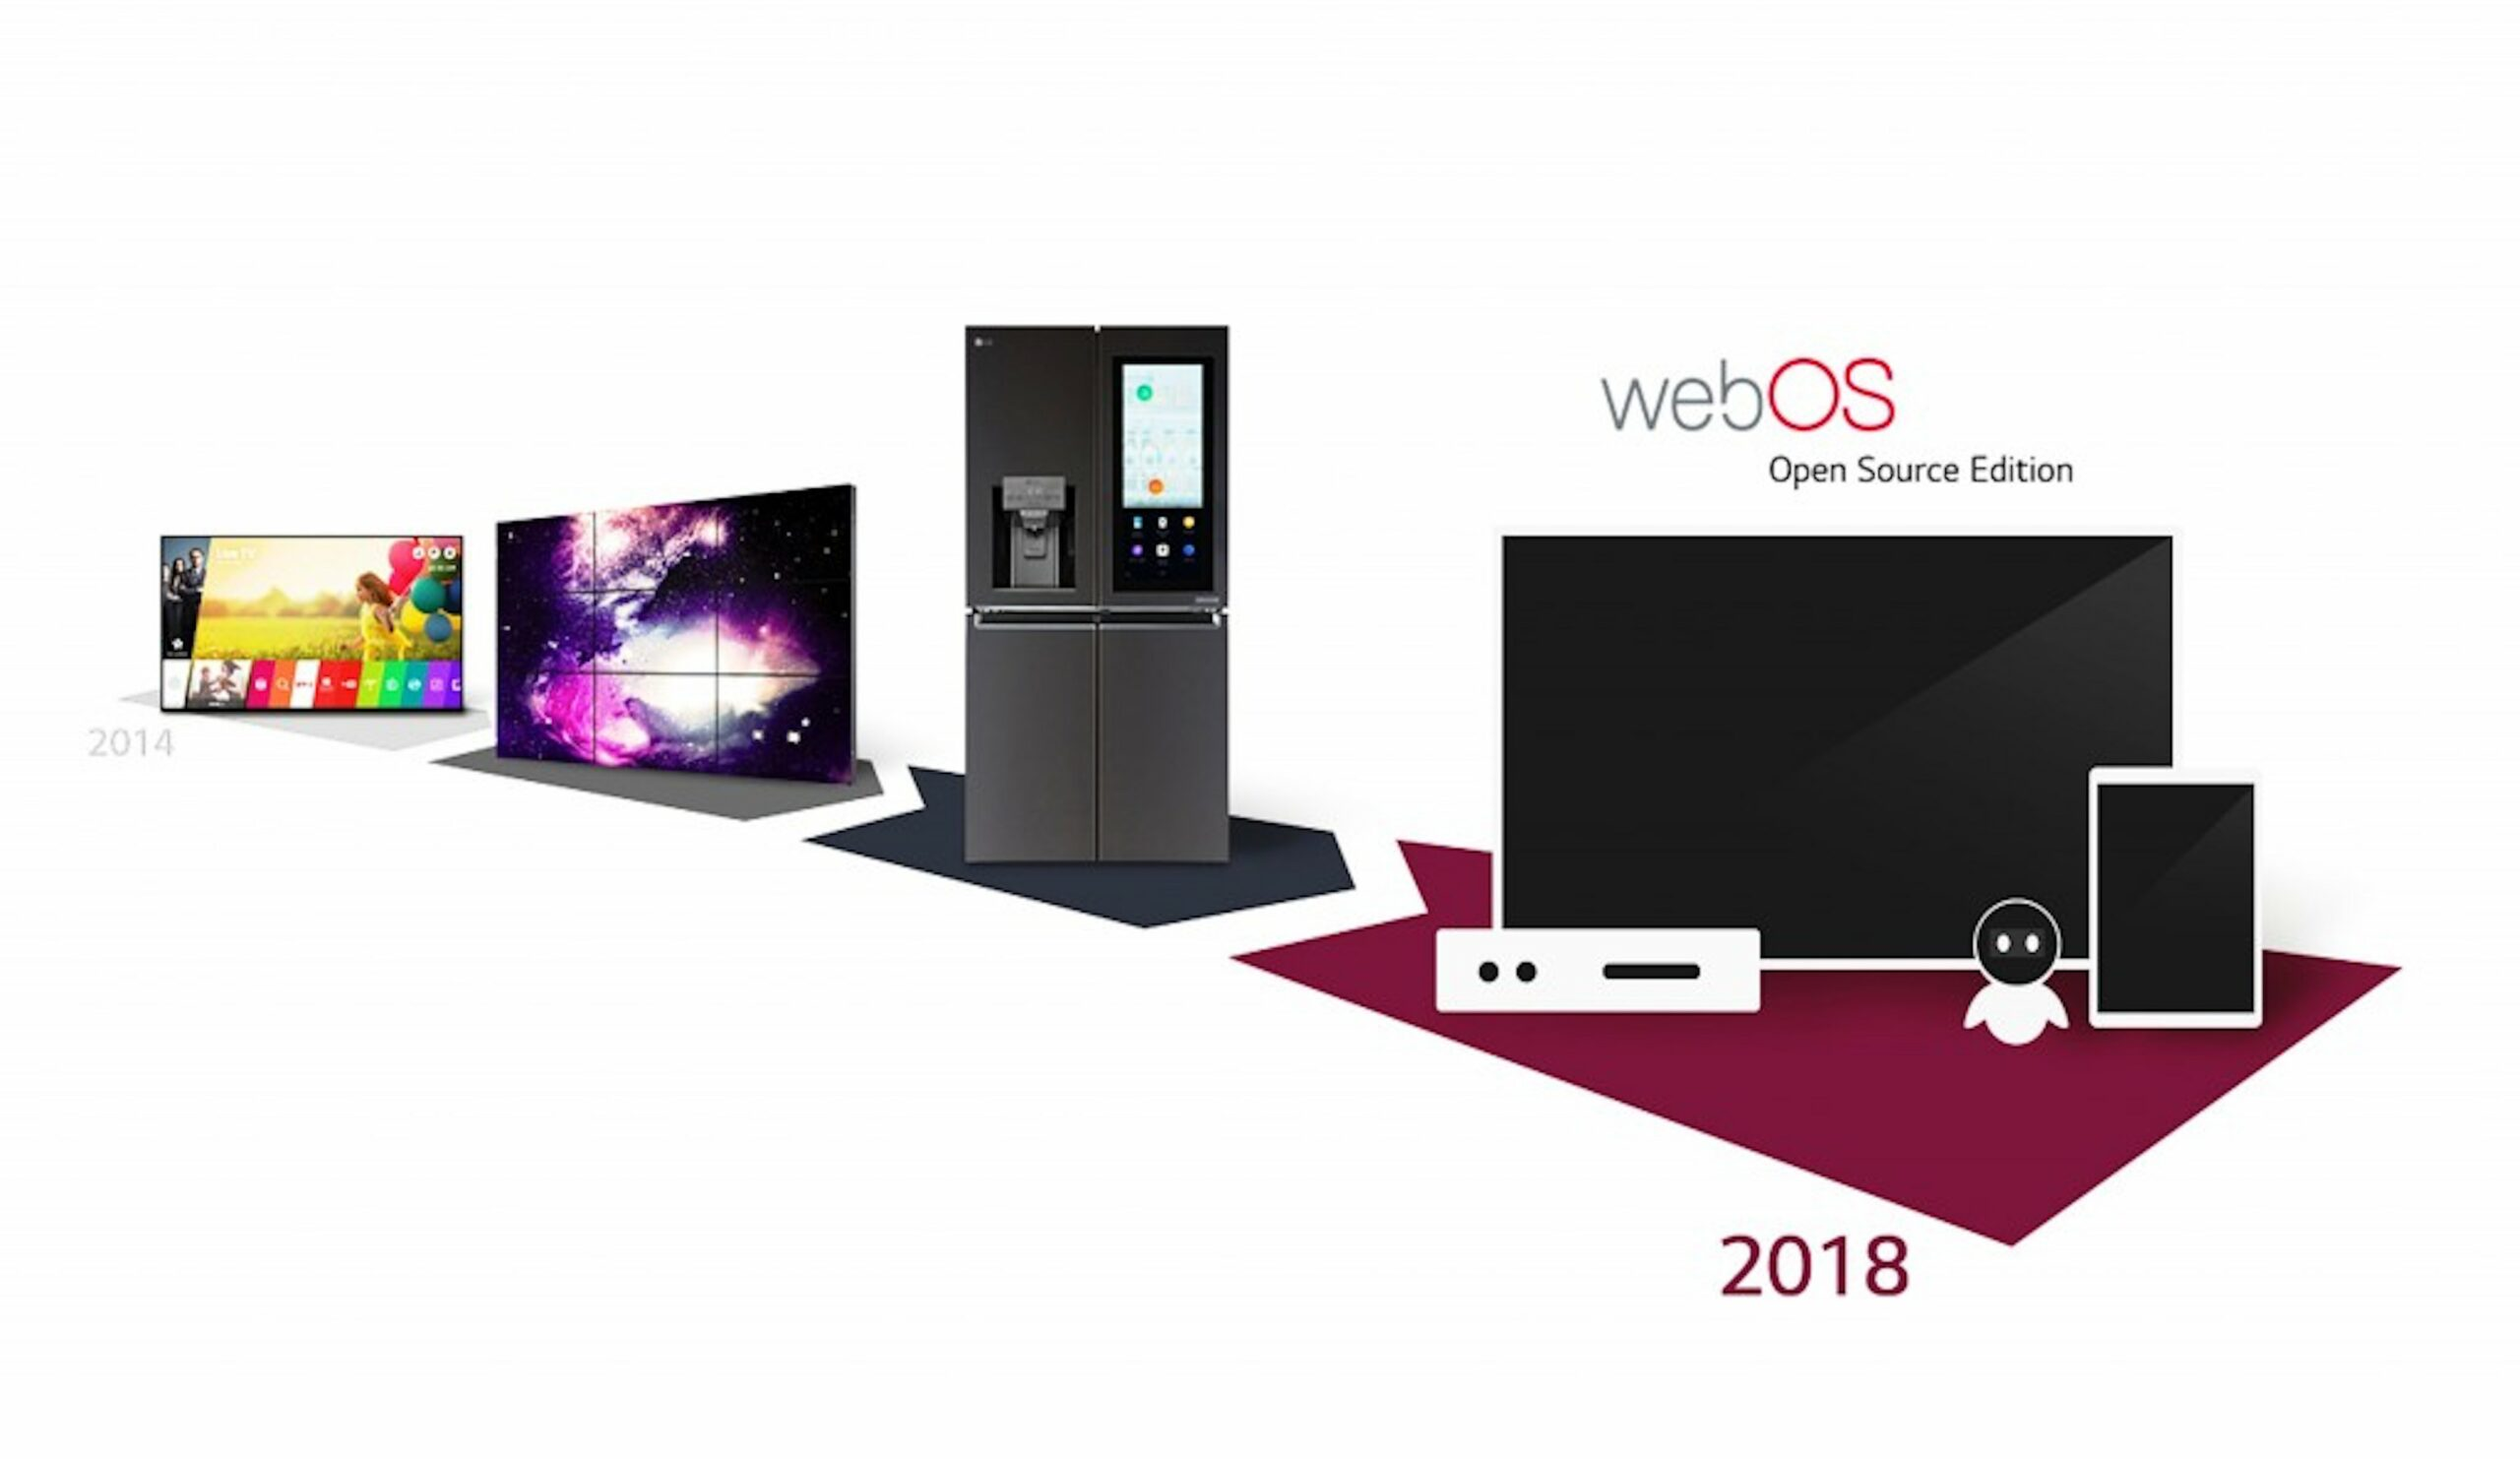 LG is open-sourcing webOS to expand beyond Smart TVs